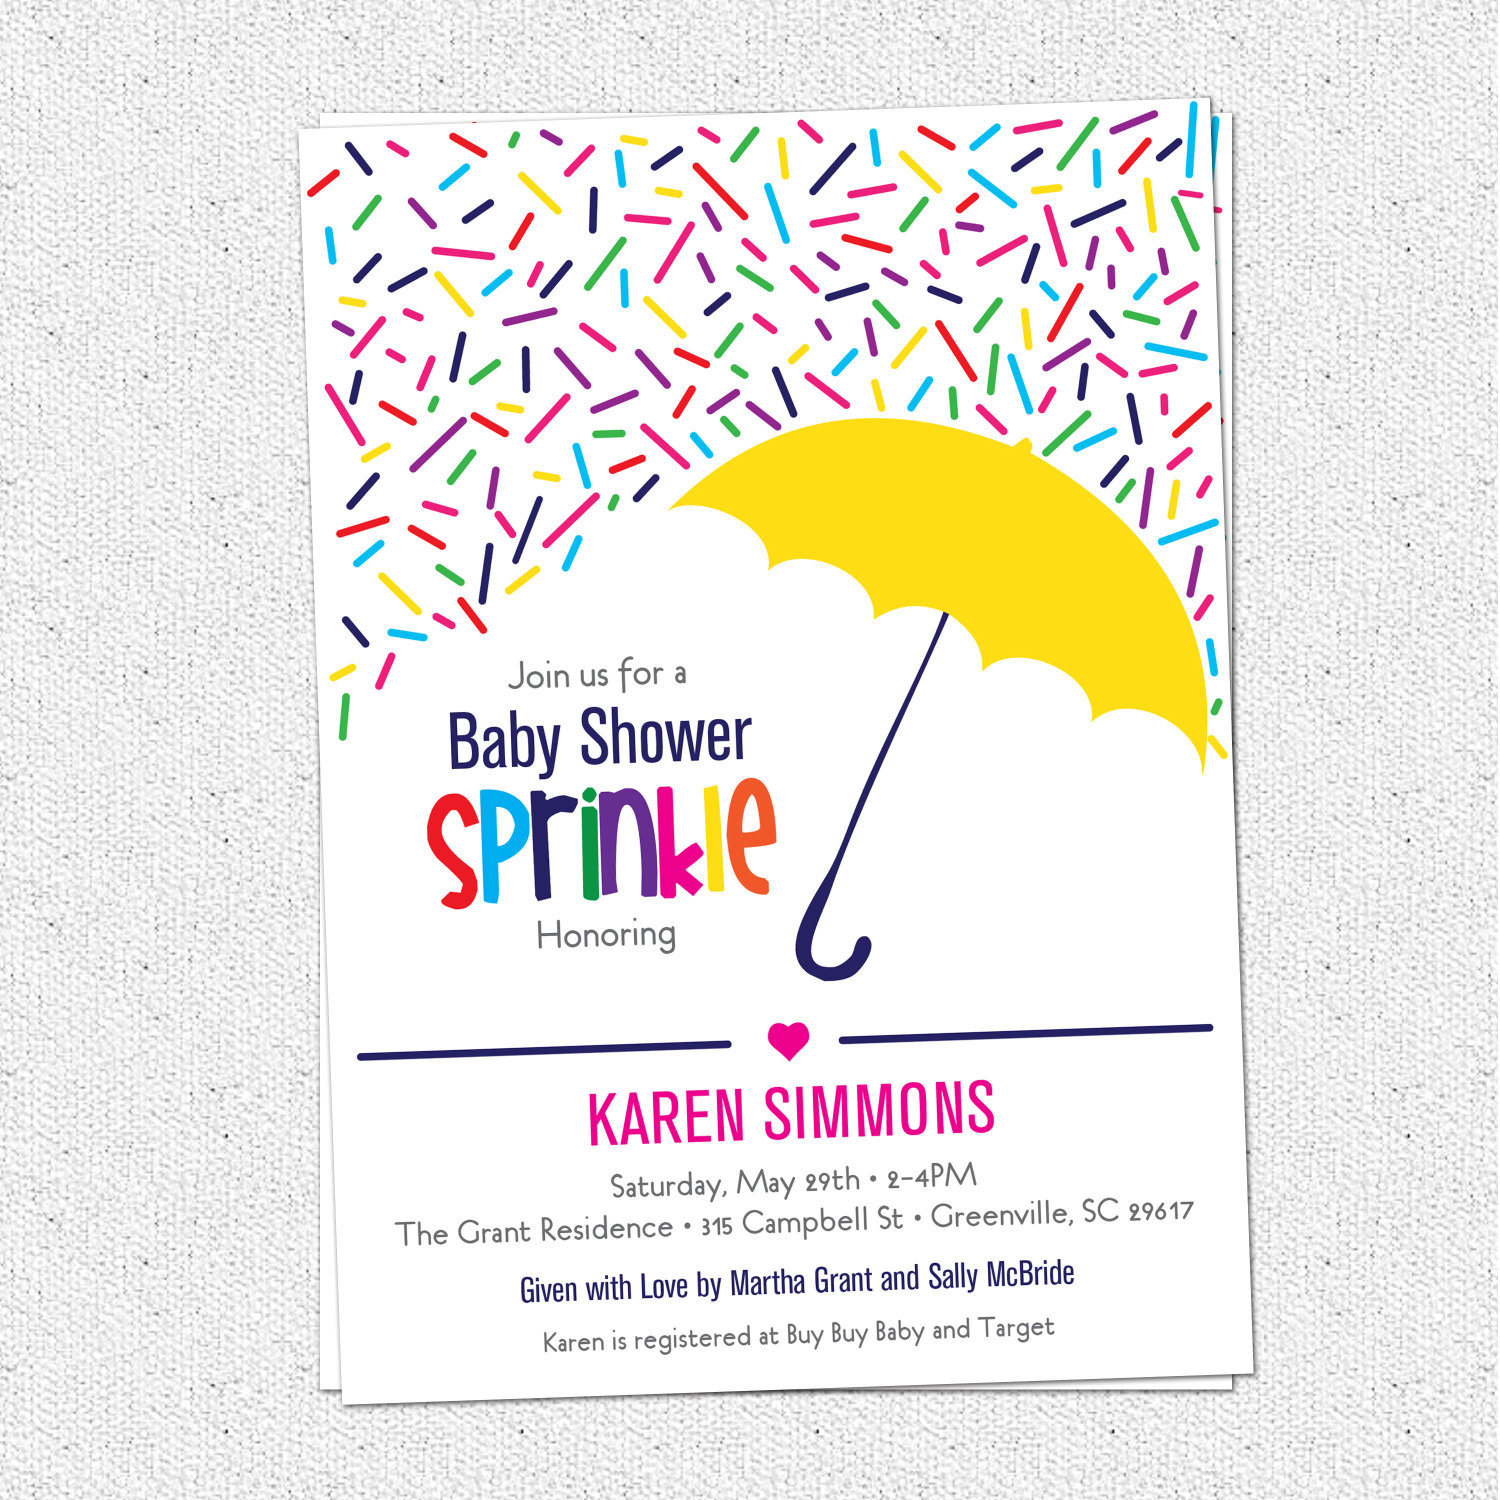 sprinkle baby shower invitations raining rainbow sprinkles and